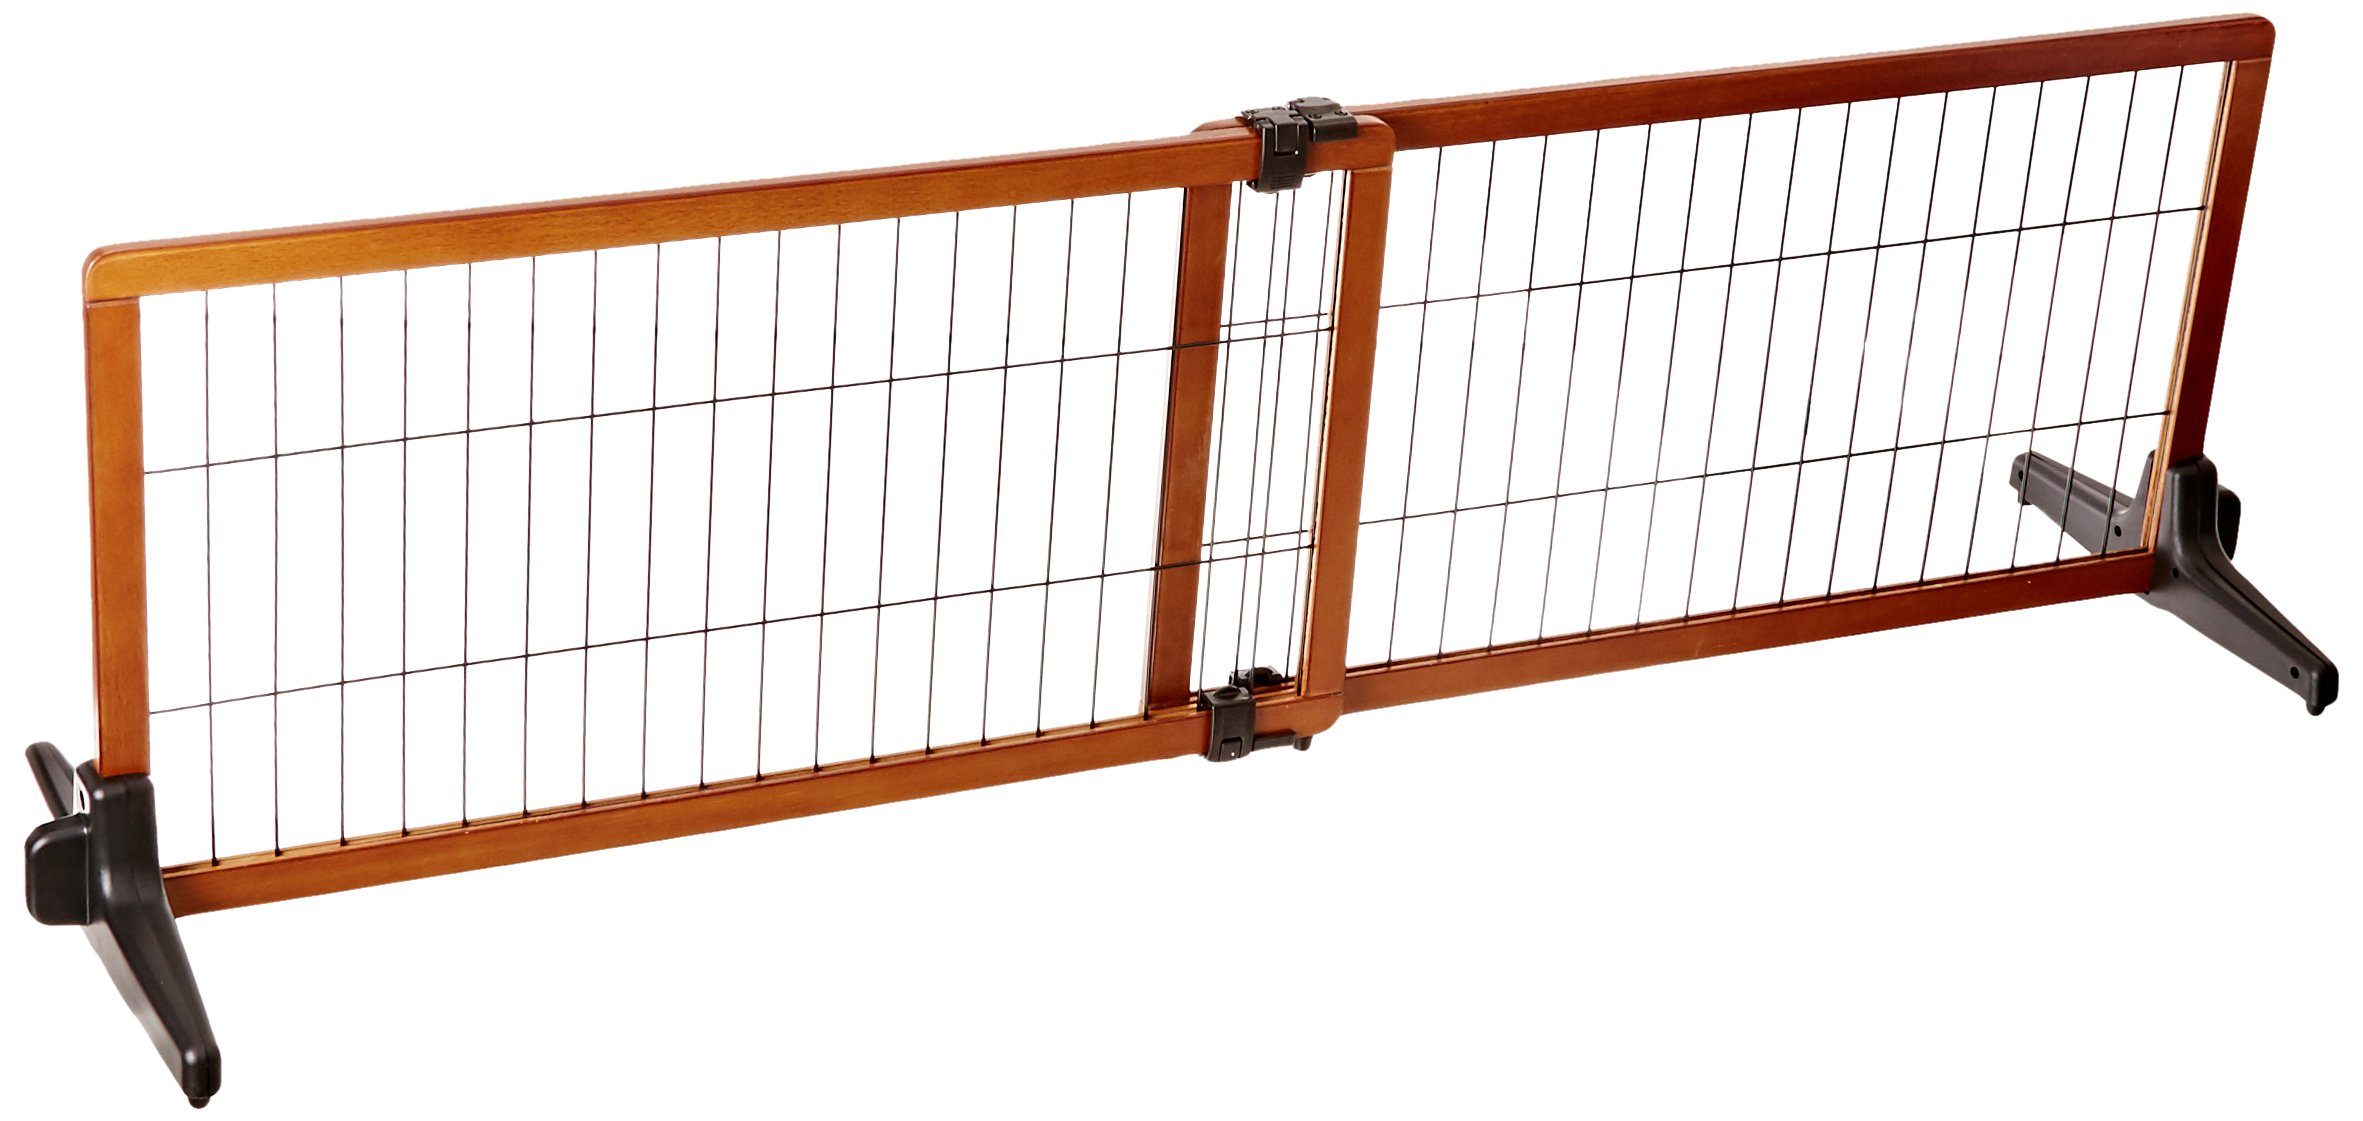 Carlson 68-Inch Wide Adjustable Freestanding Pet Gate, Premium Wood by Carlson Pet Products (Image #2)